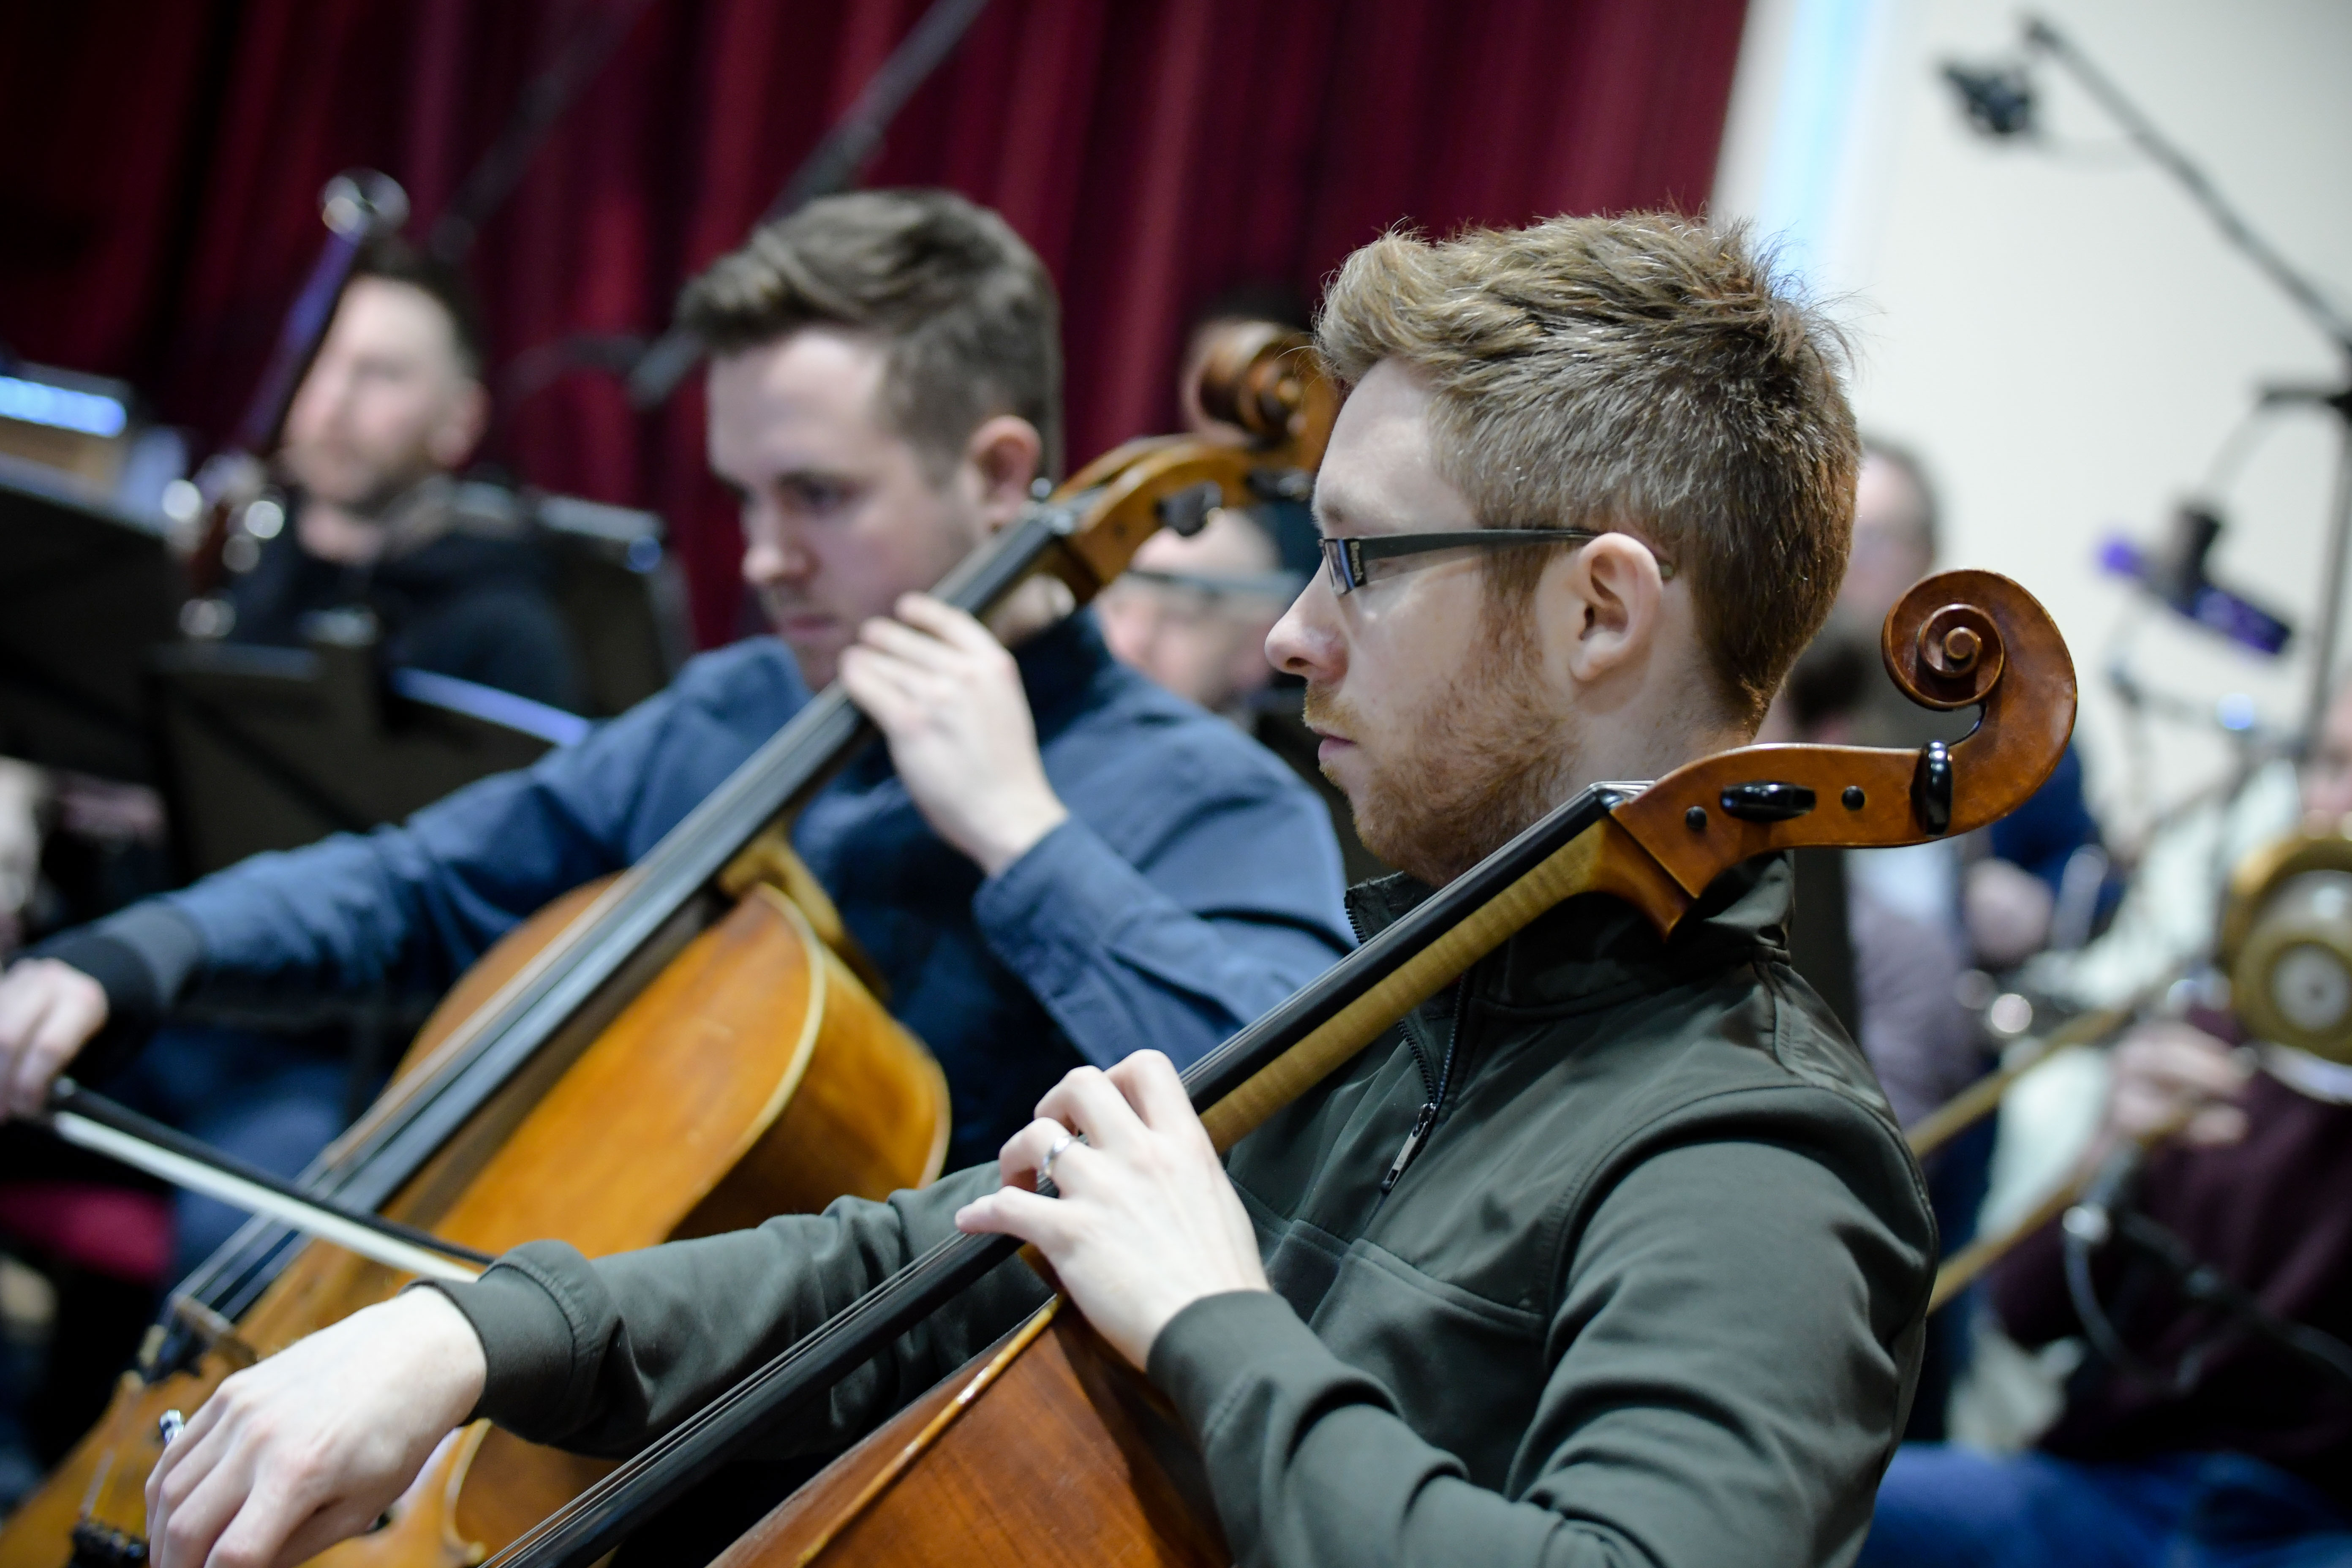 The Musician : A Horror Opera For Children at The Harty Room Queen's University